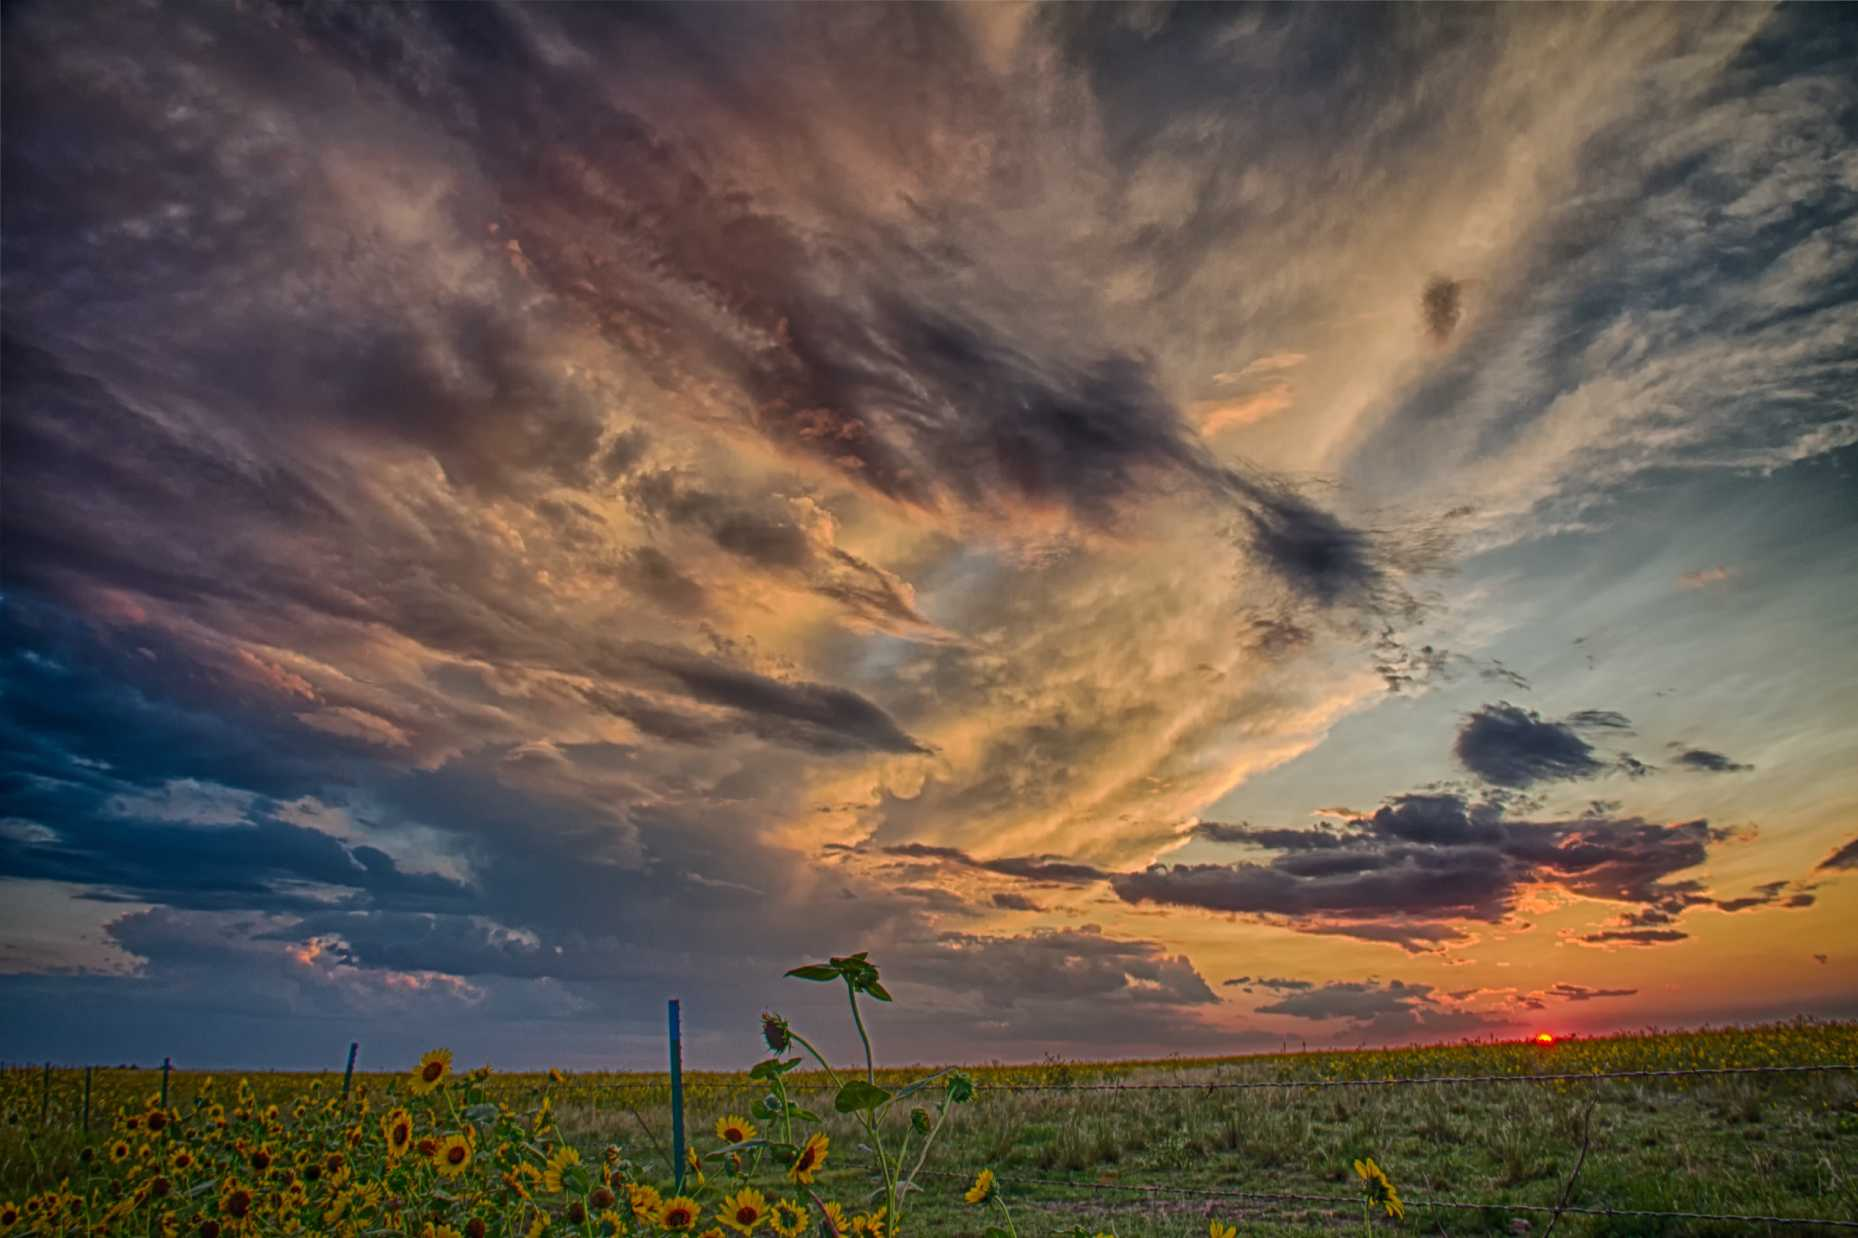 Sunset_Sunflowers 2 RS